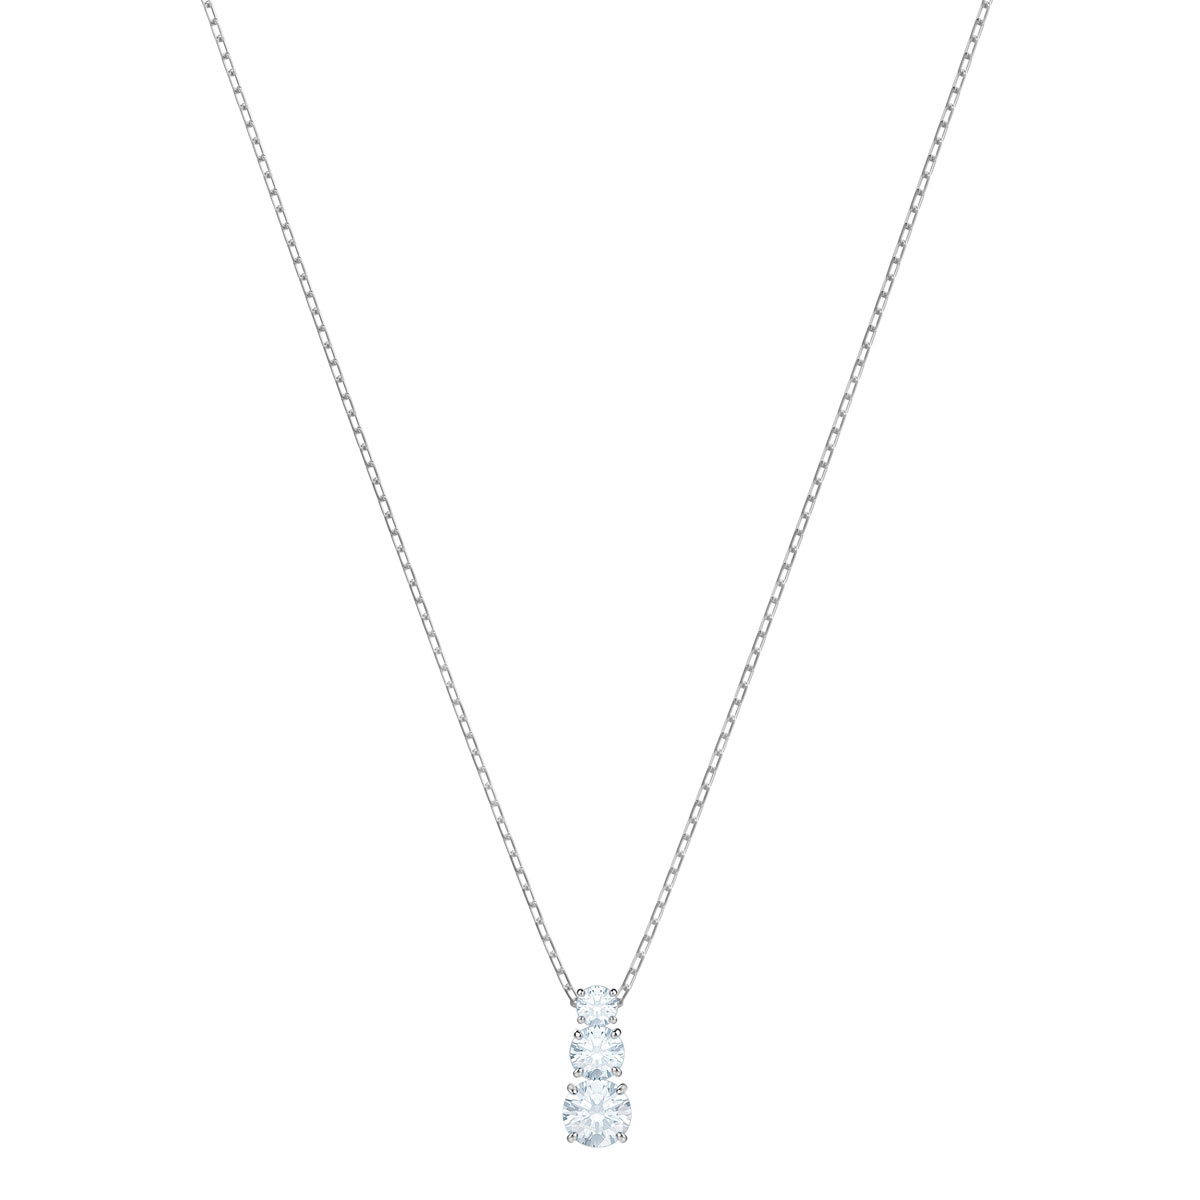 Swarovski Attract Trilogy Round Crystal and Rhodium Pendant Necklace